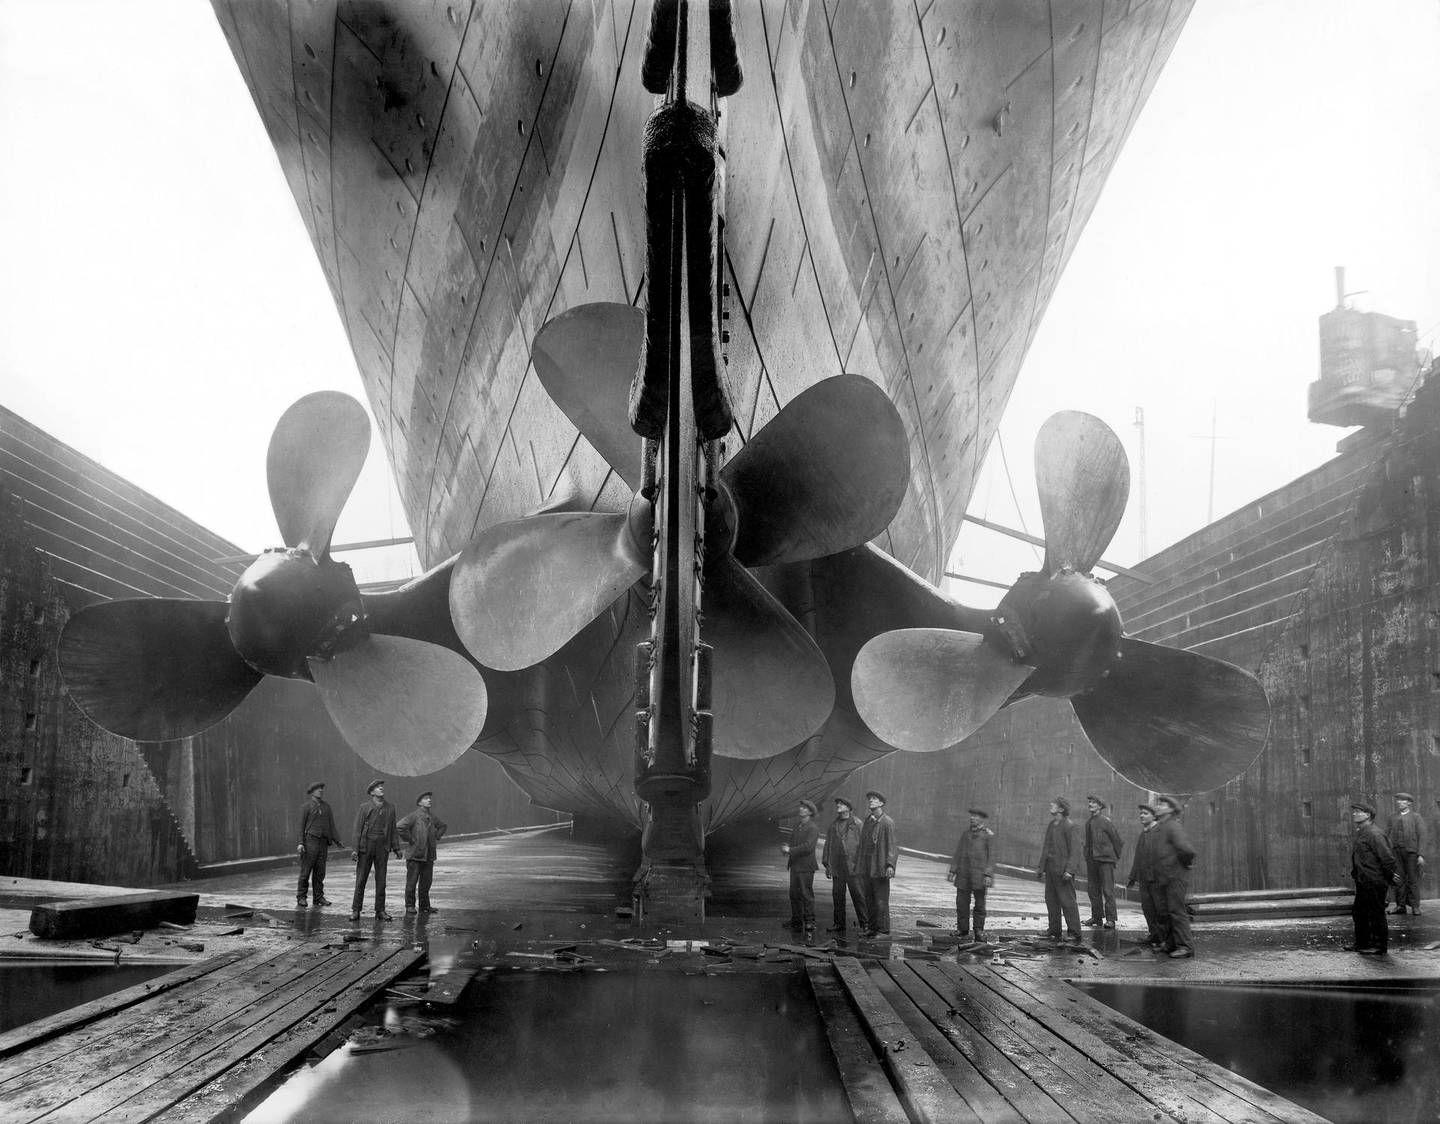 Titanic in dry dock, 1911. Getty Images